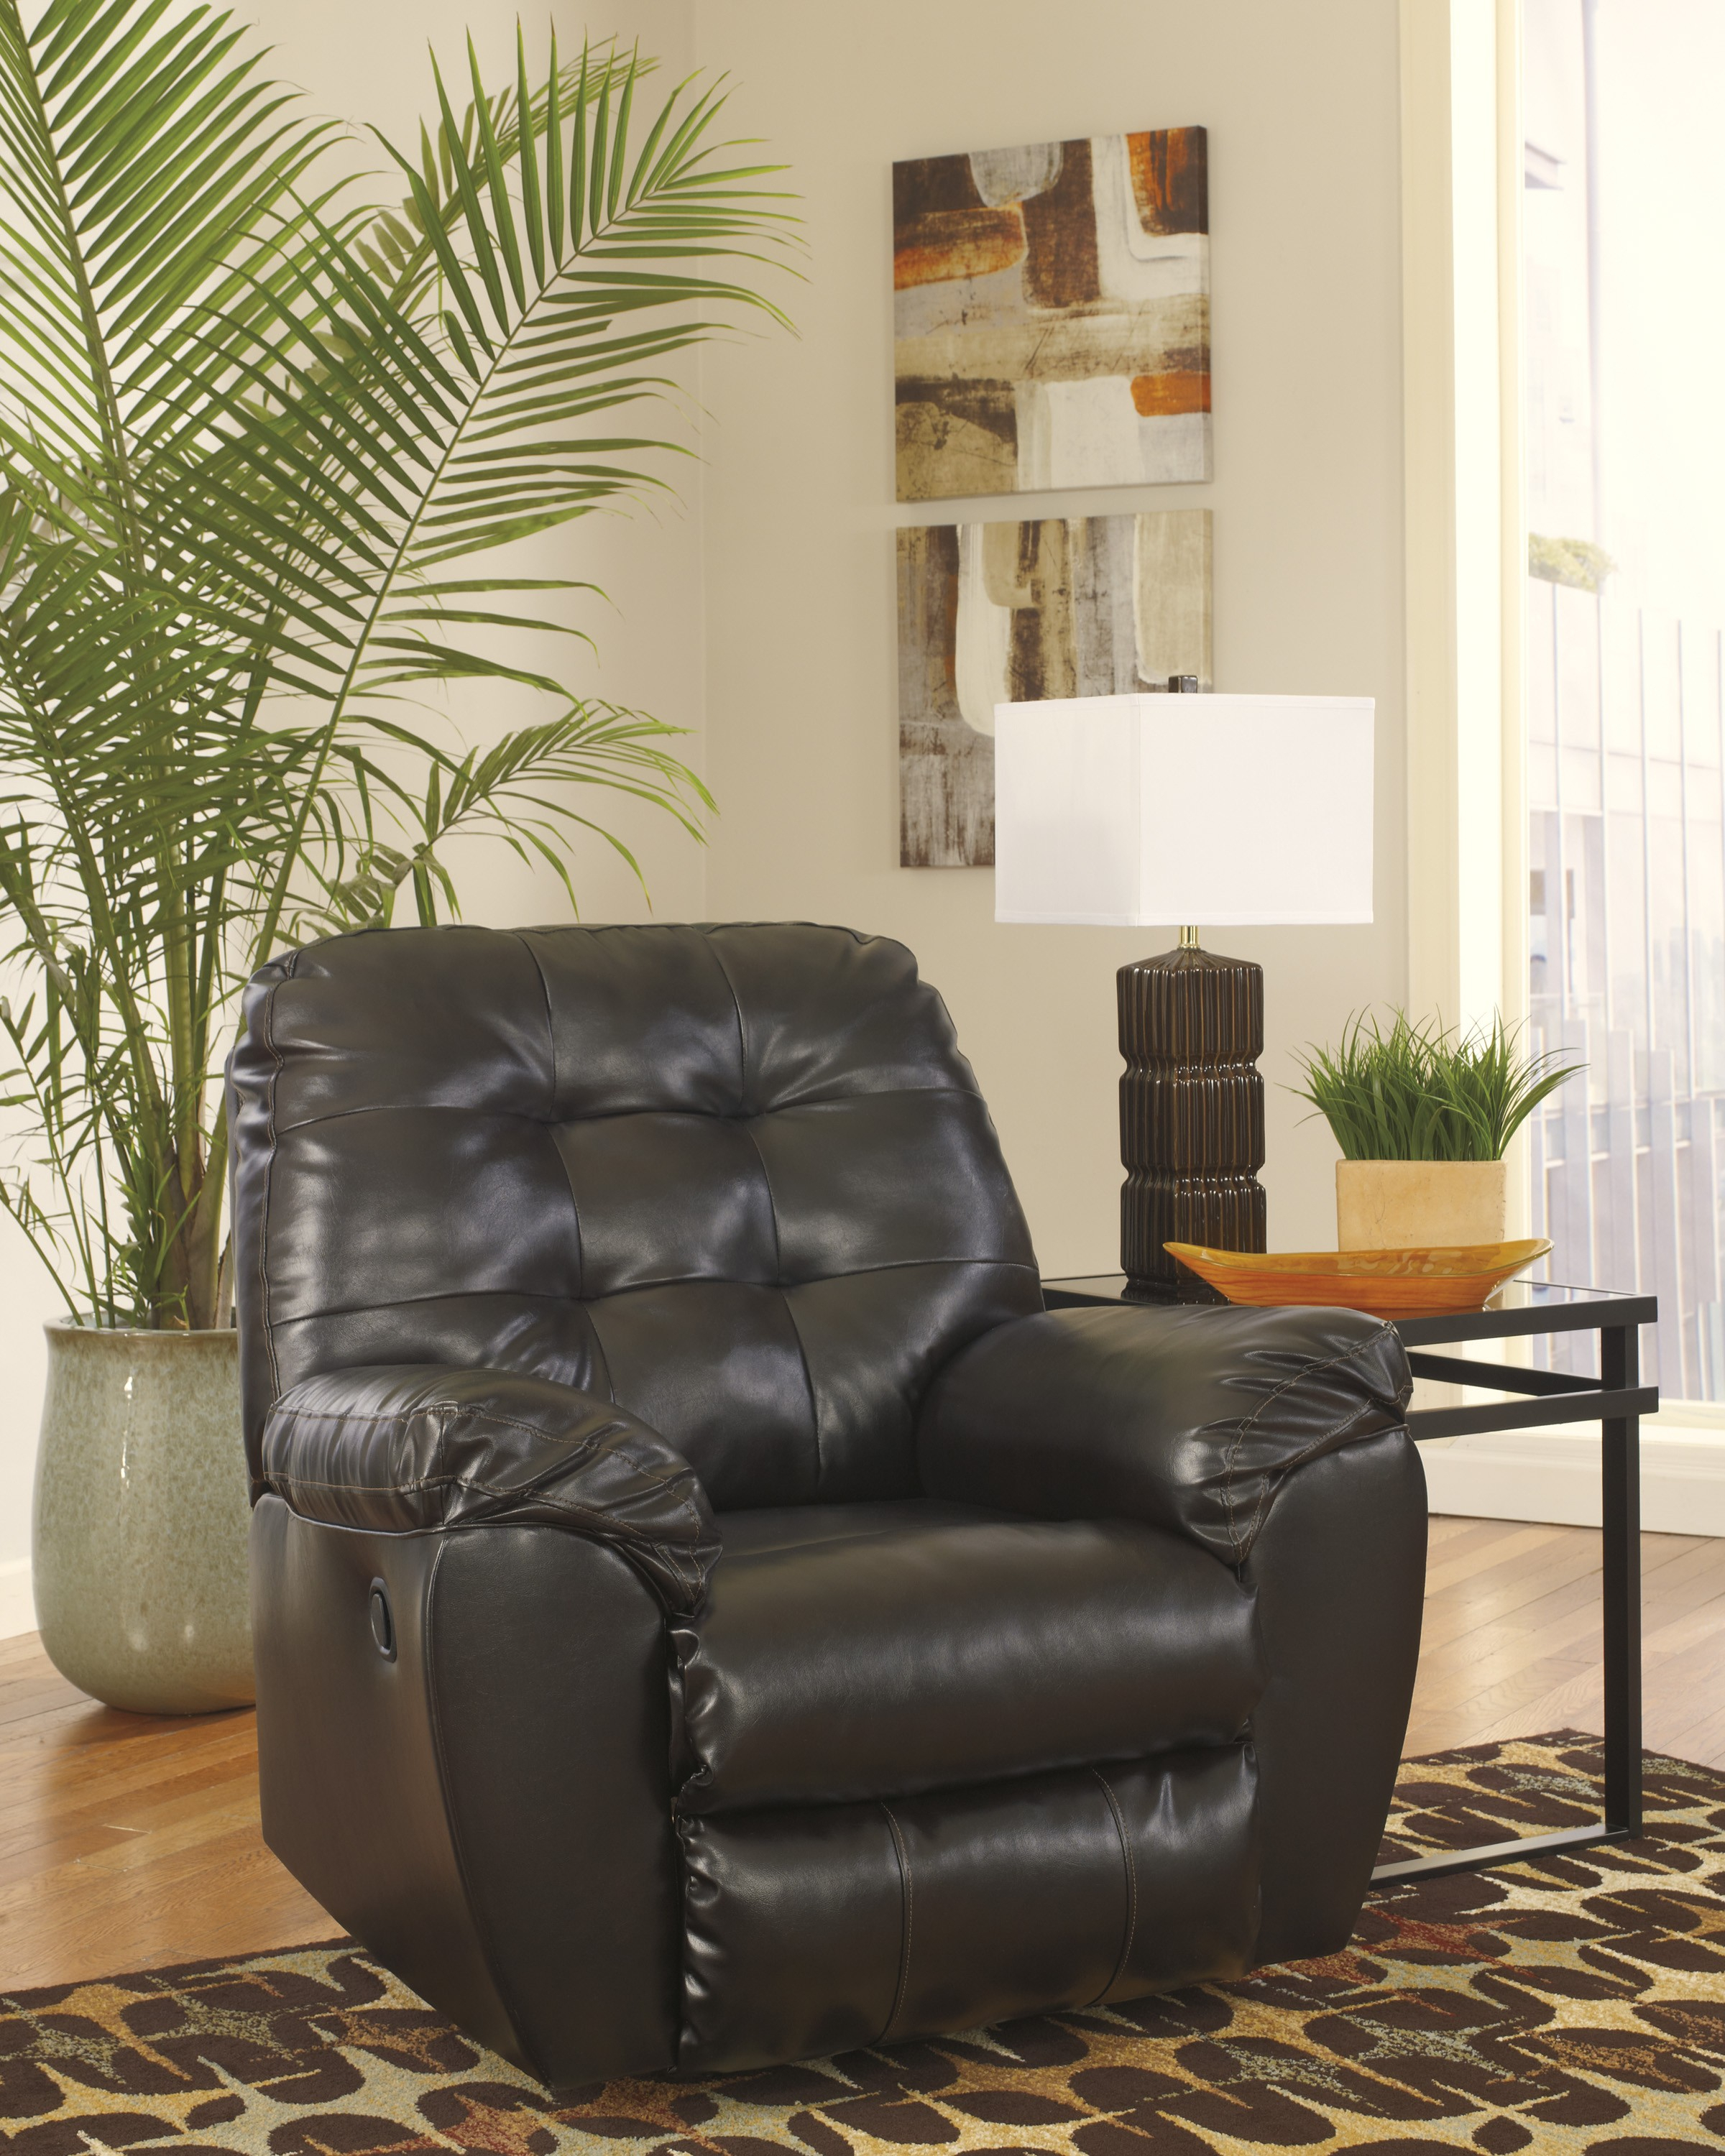 Leon Furniture | Buy Living Rooms Recliners Online, Phoenix With Hercules Chocolate Swivel Glider Recliners (View 24 of 25)